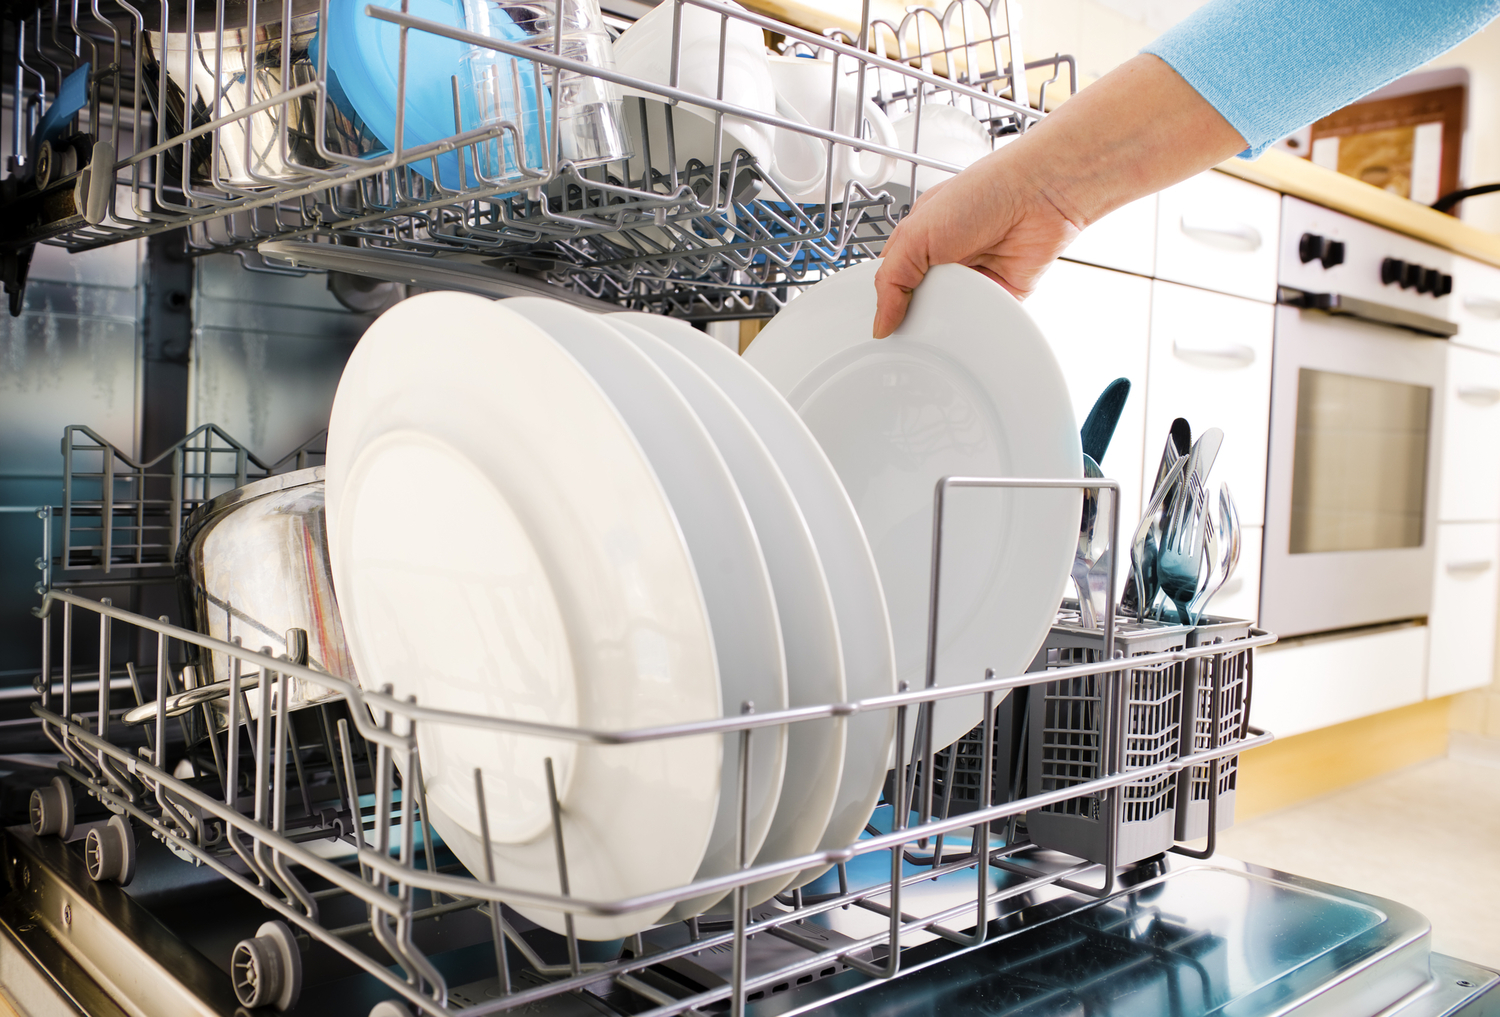 Save money by making your own dishwasher tablets